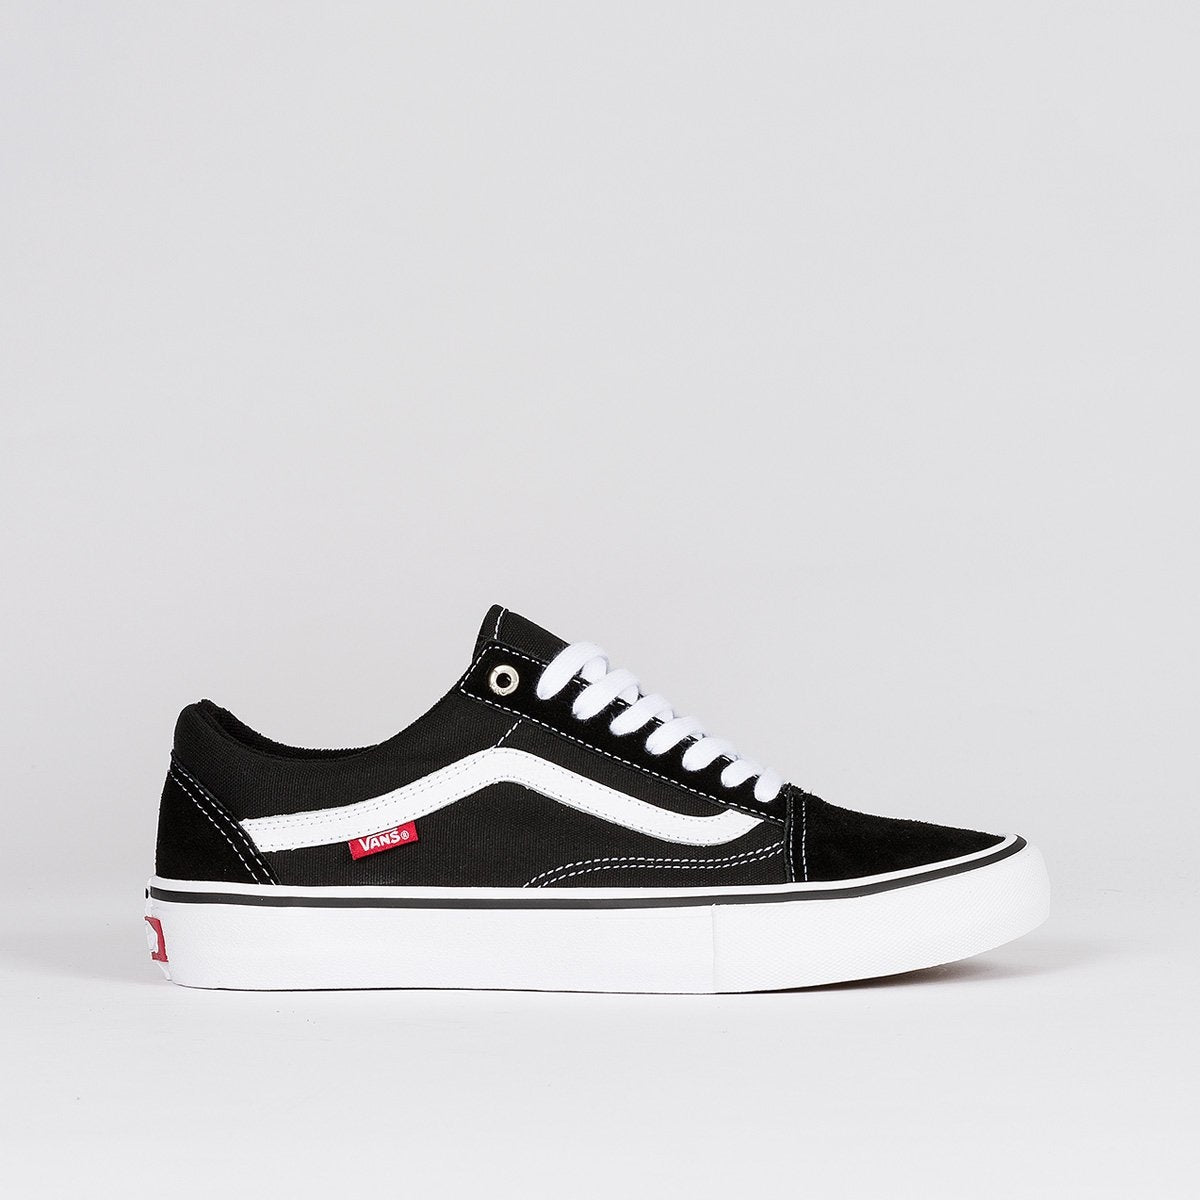 Vans Old Skool Pro Black/White - Footwear